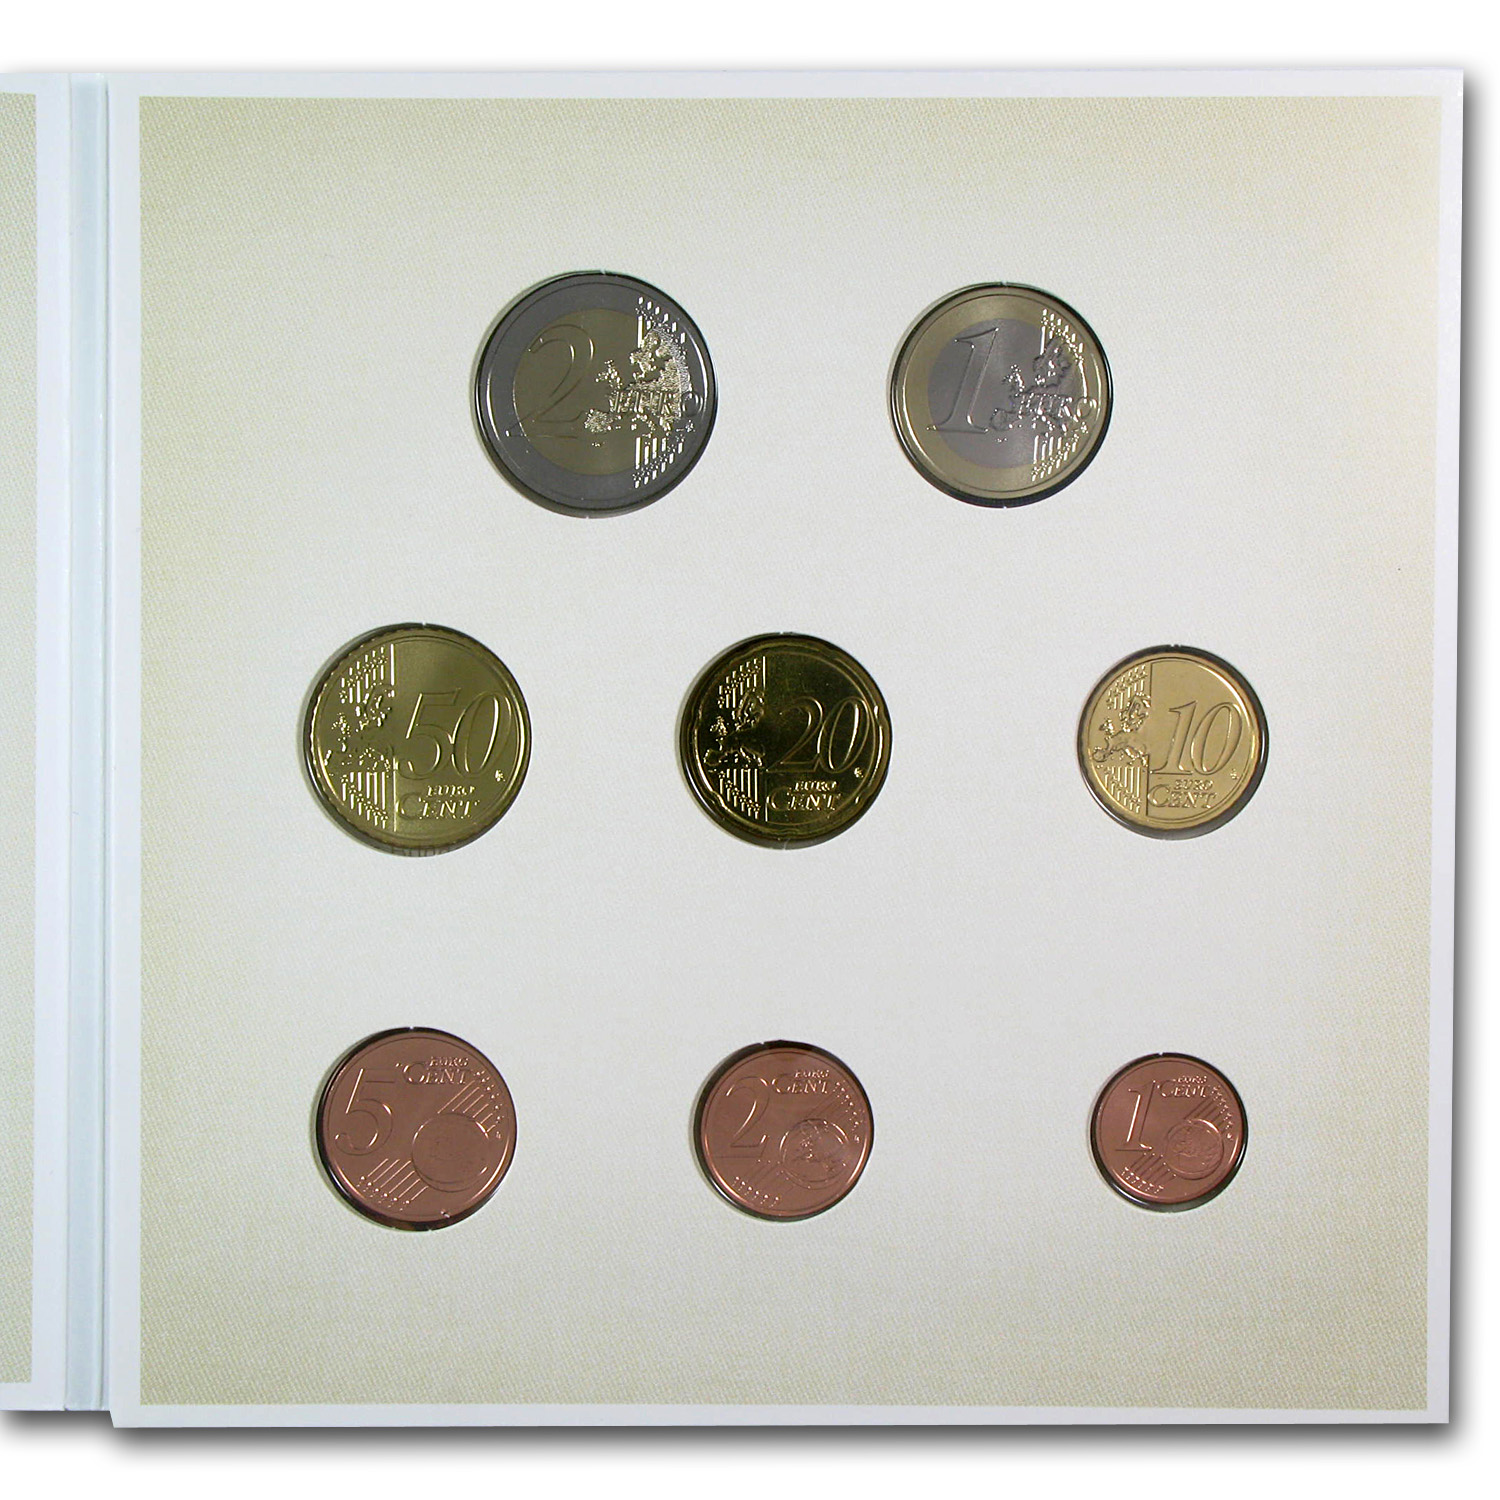 2014 Austria 8-Coin Unforgettable Baby Euro Set